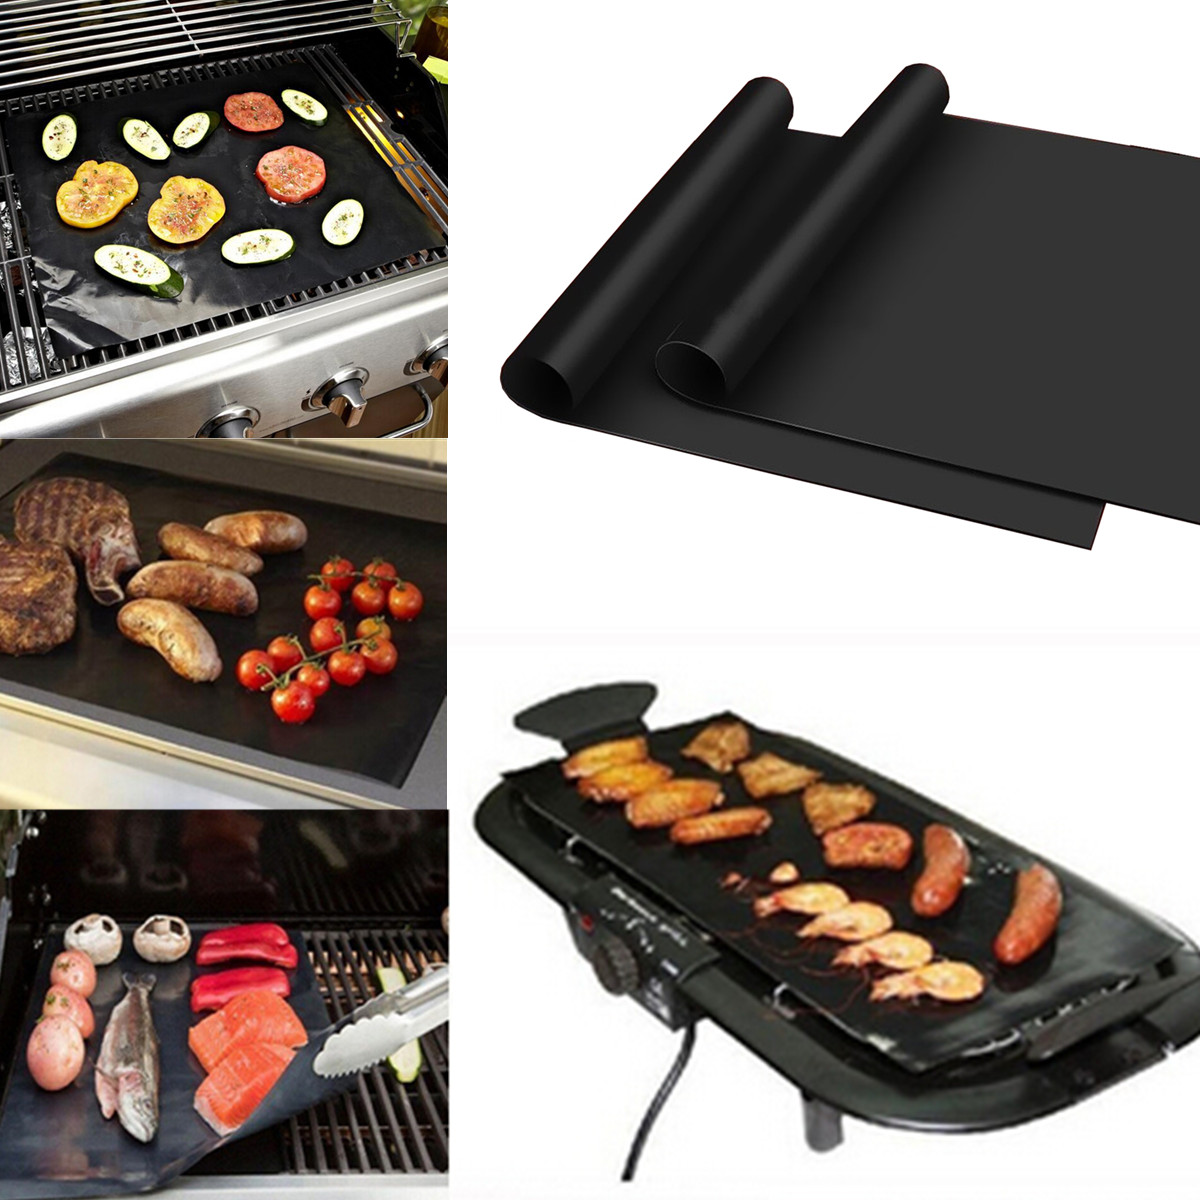 100x40cm non stick bbq grill mat barbecue cake baking mats alex nld - Grille barbecue 70 x 40 ...